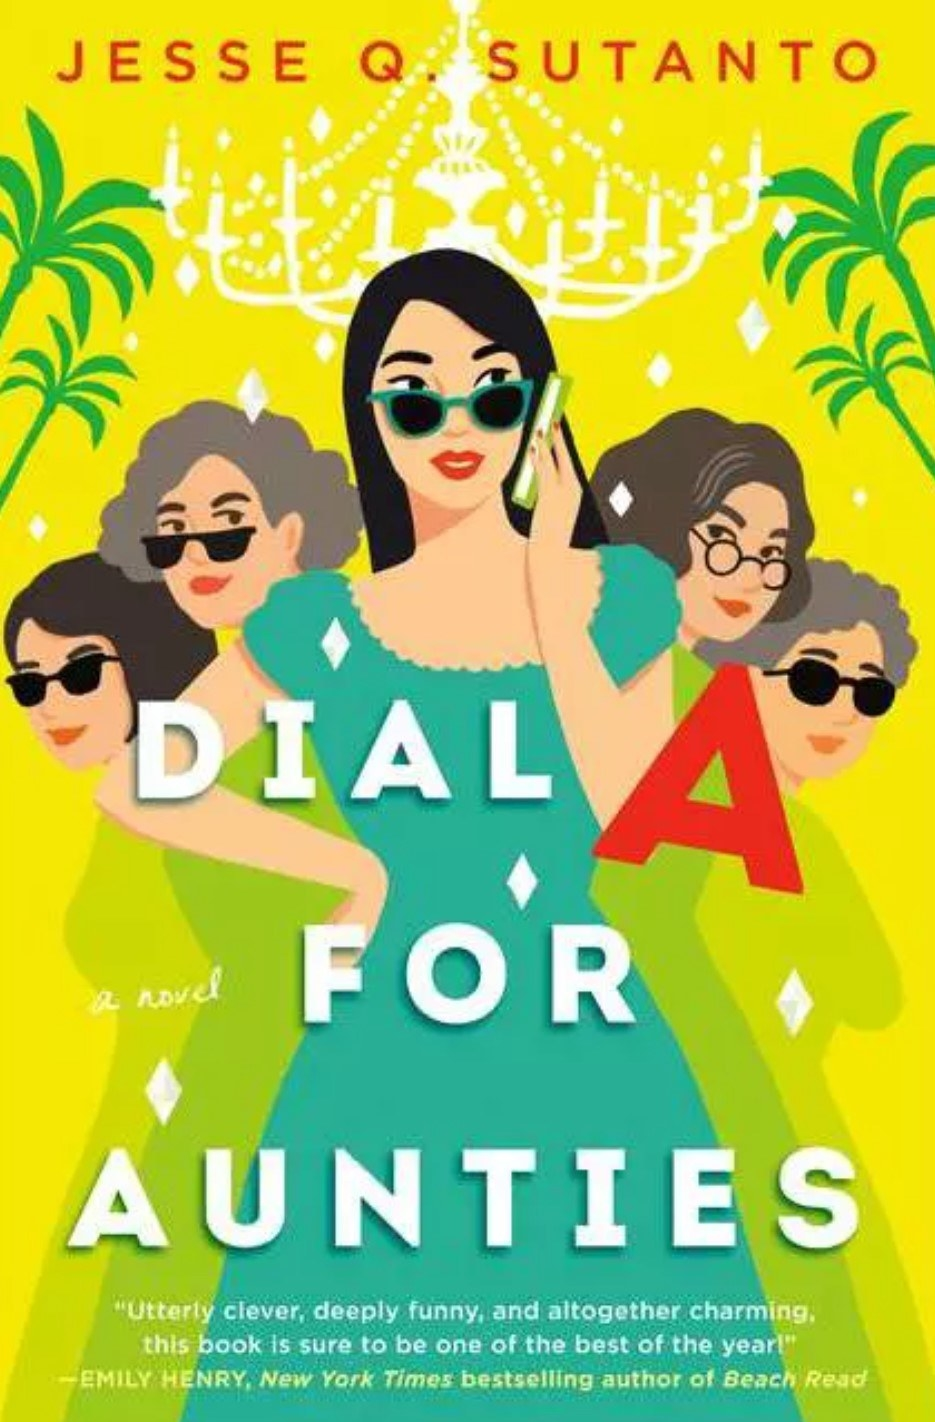 The cover of Dial A For Aunties by Jesse Q Sutanto